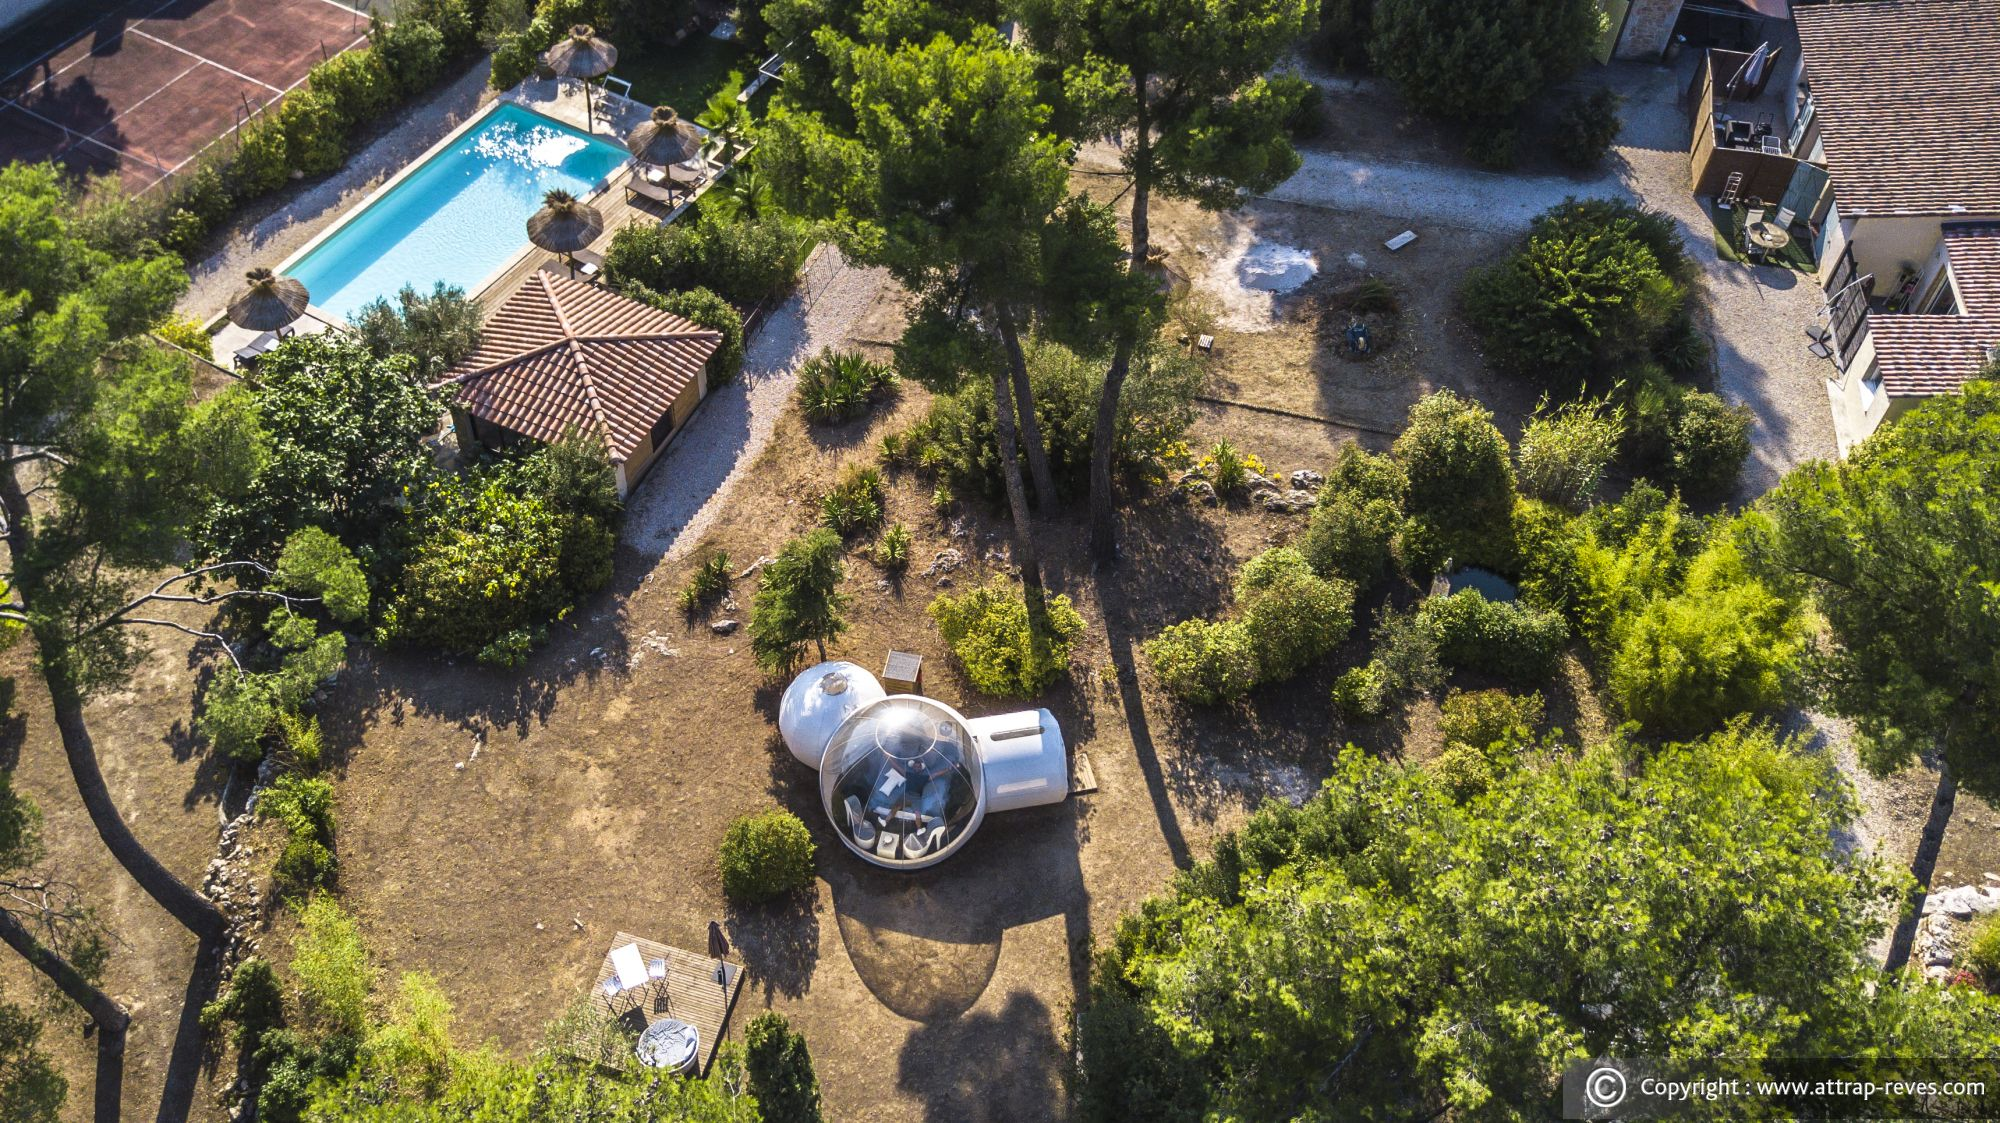 ATTRAP'RÊVES BUBBLE HOTEL at Allauch for an unusual night